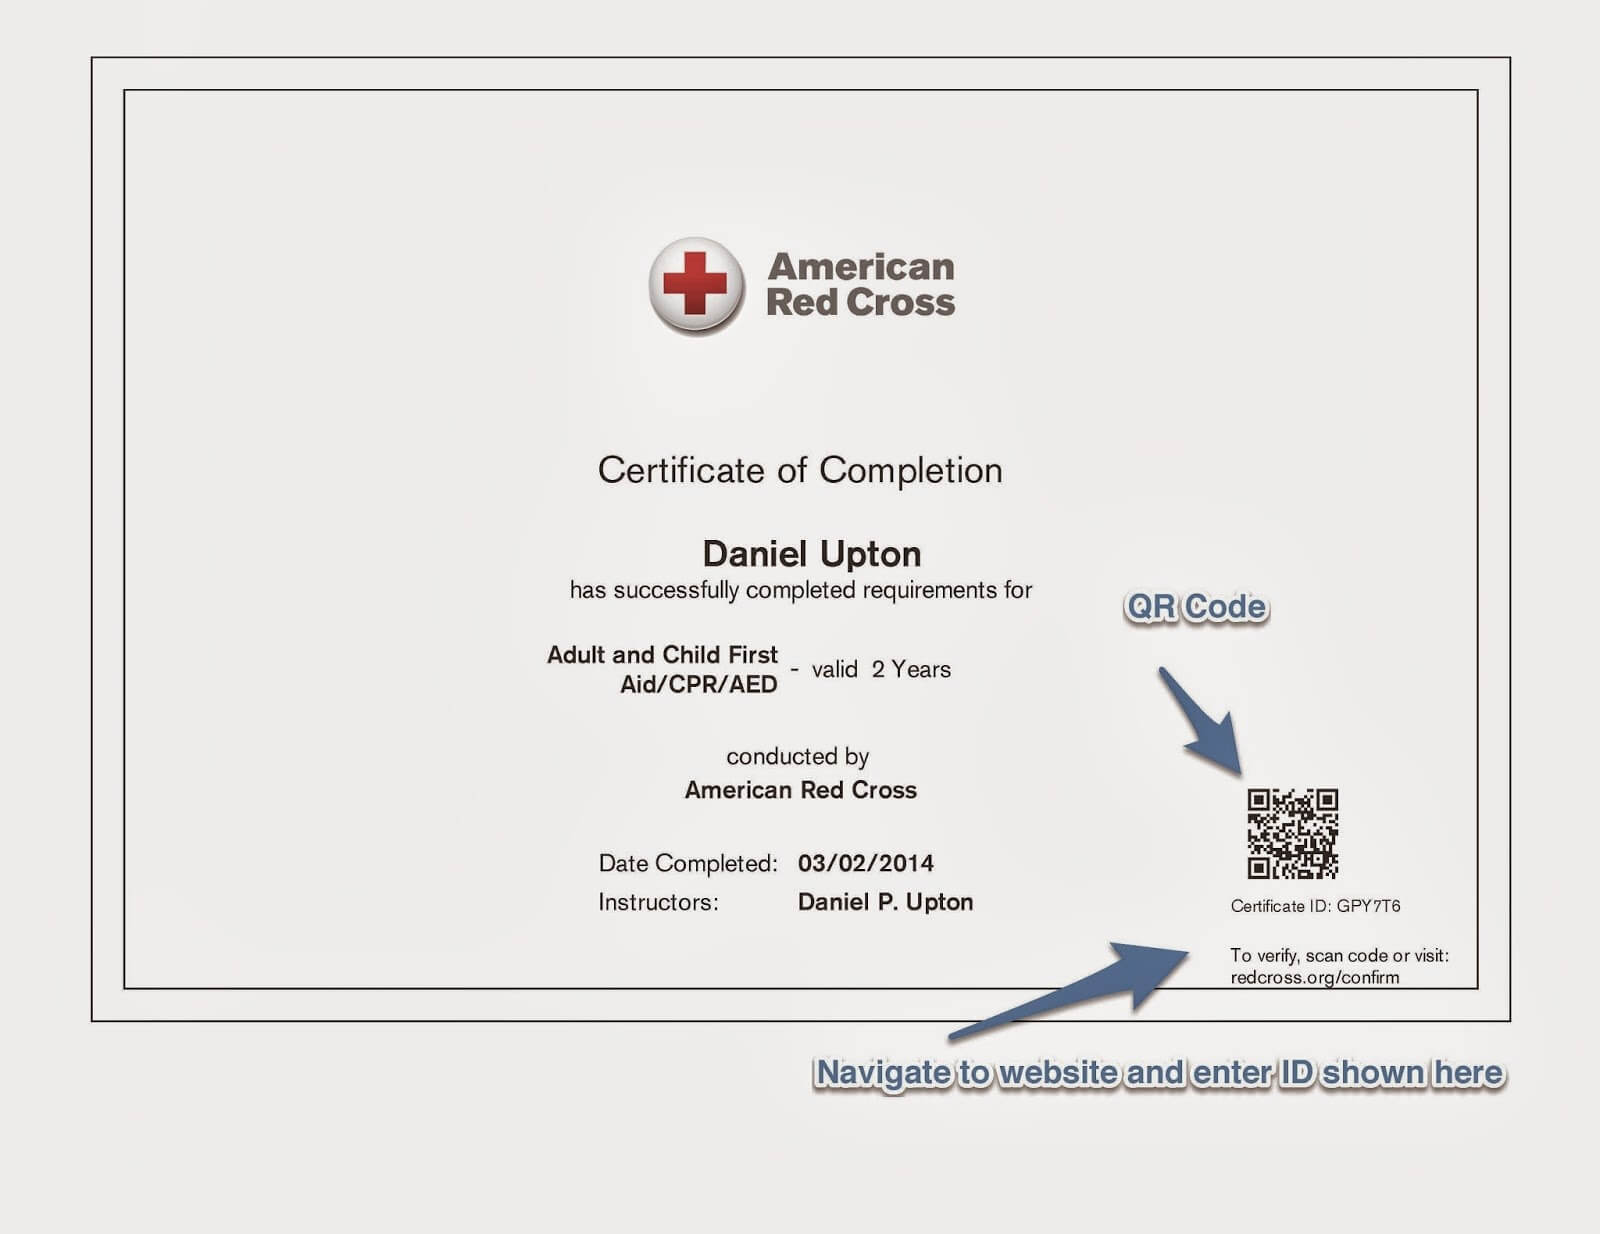 American Red Cross Cpr Card Template ] – Aha Training Center In Cpr Card Template